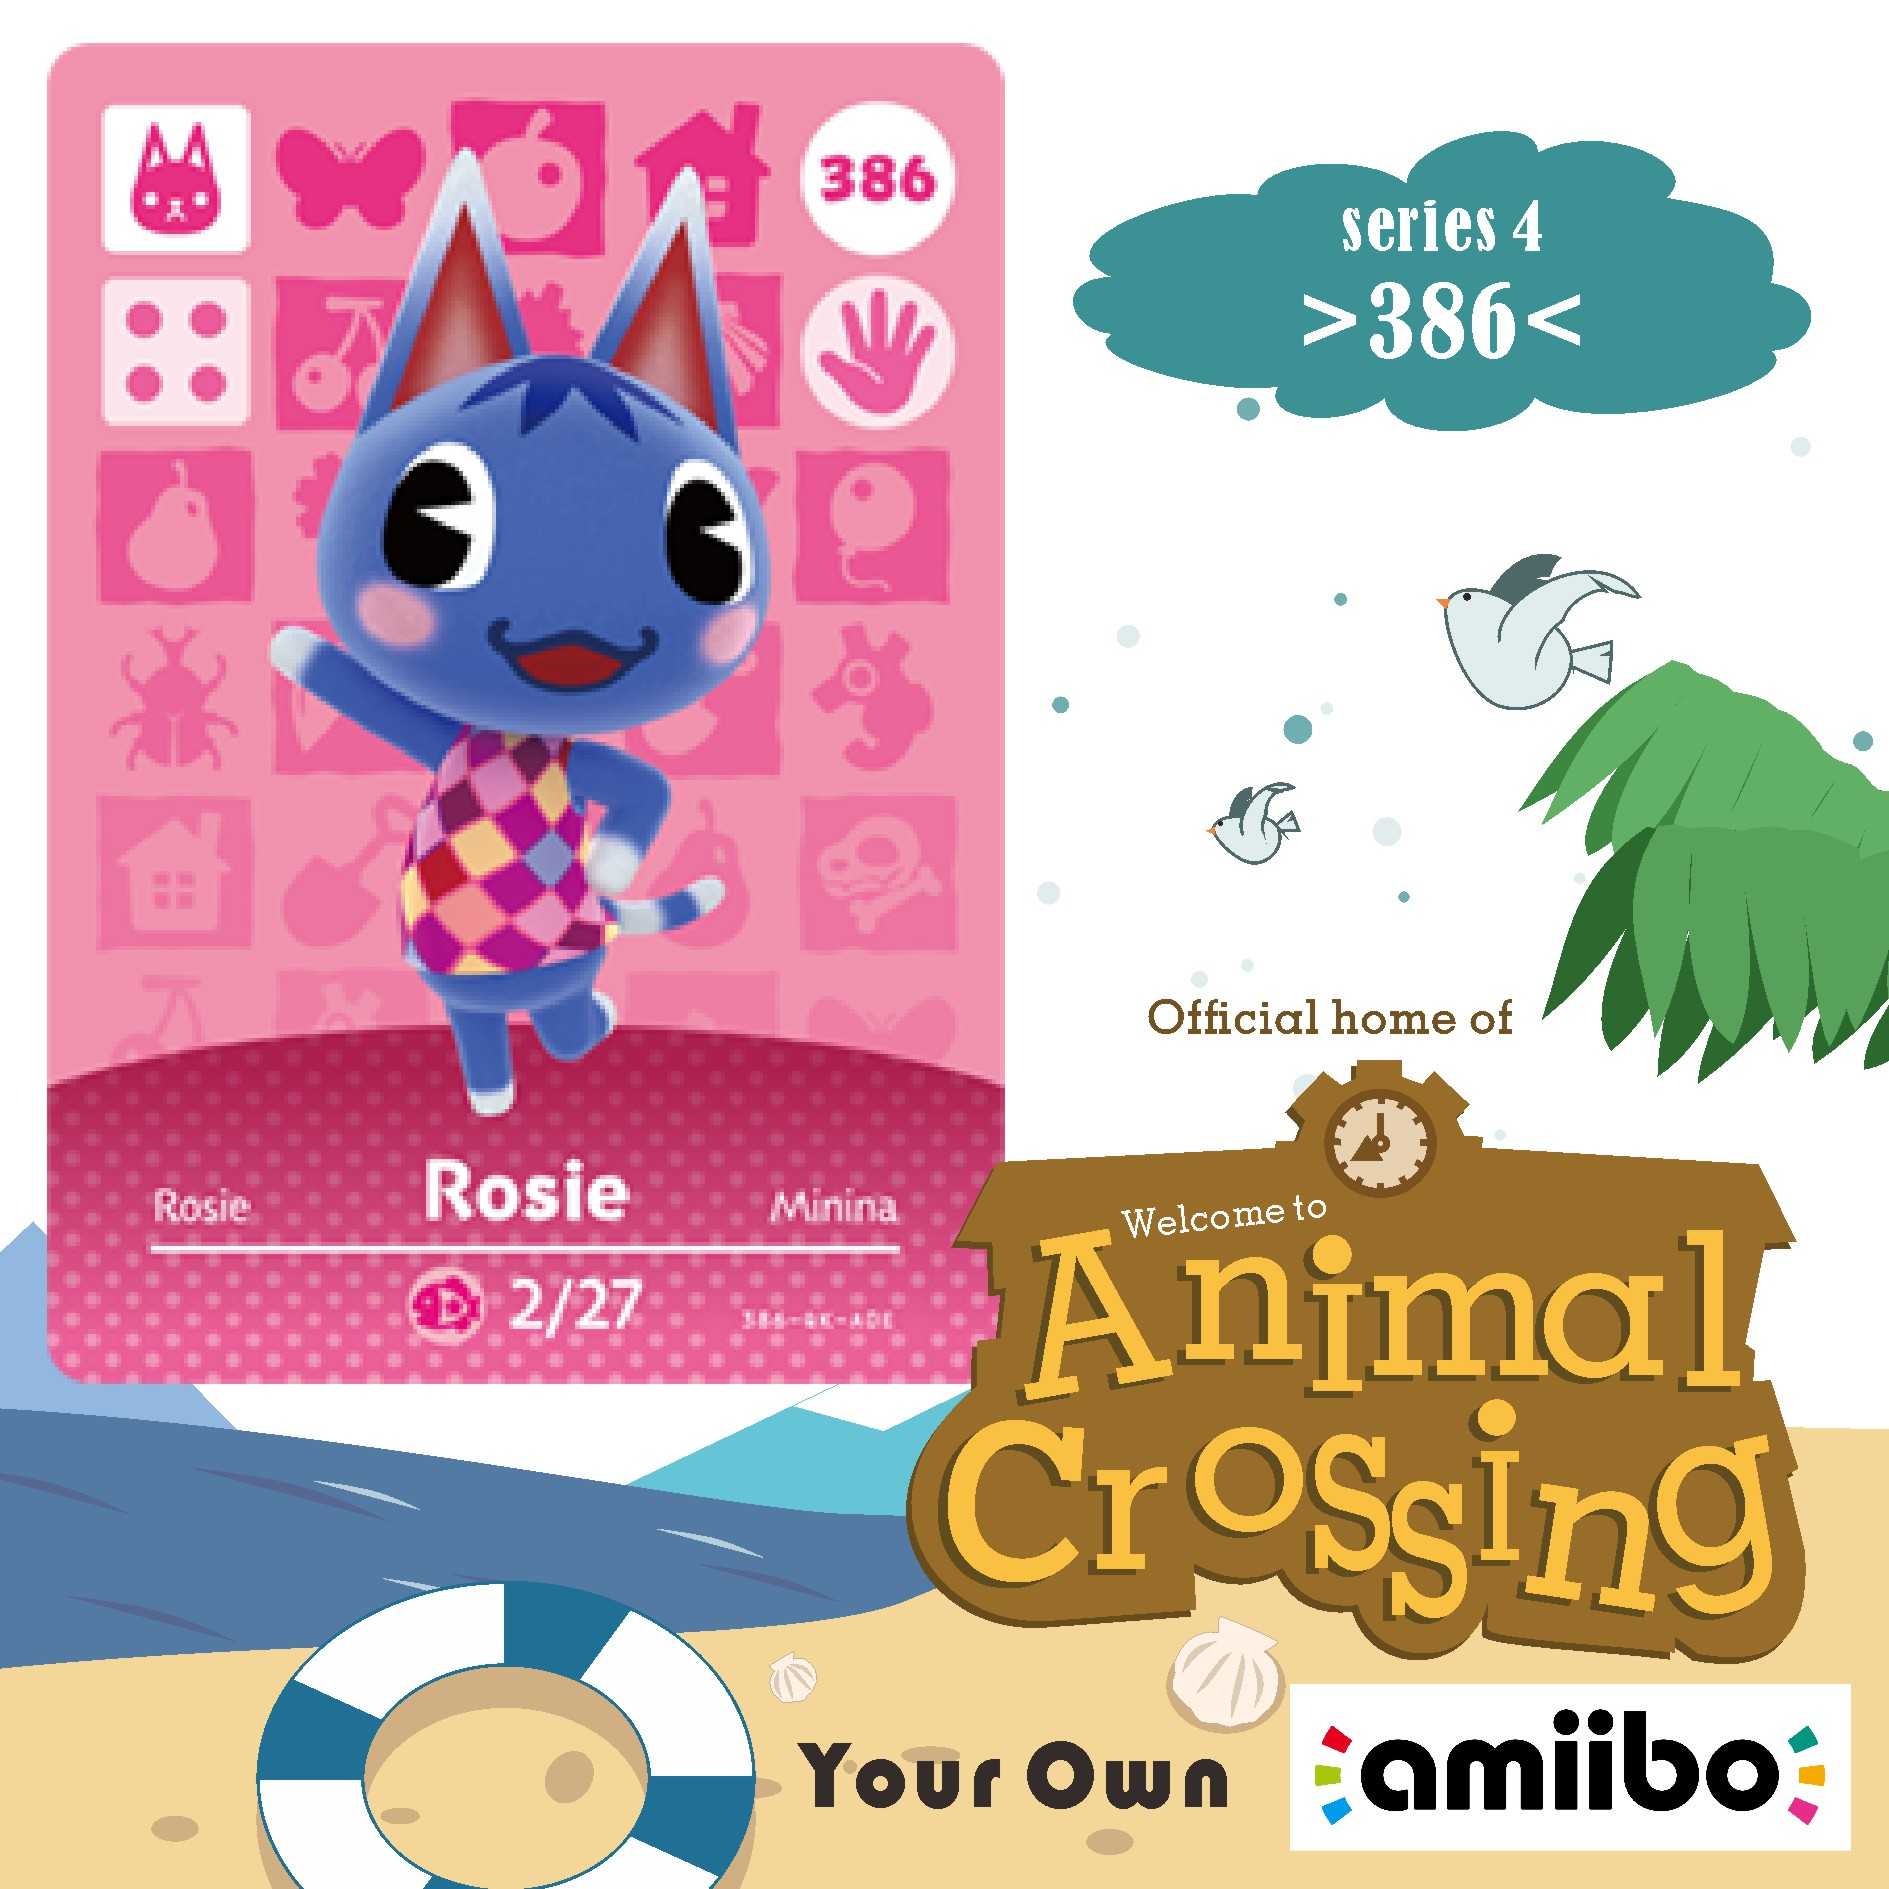 386 Amiibo Card Rosie Amiibo Cards Animal Crossing Rosie Animal Crossing Season Amiibo Cross Card Series 1 Villager 386